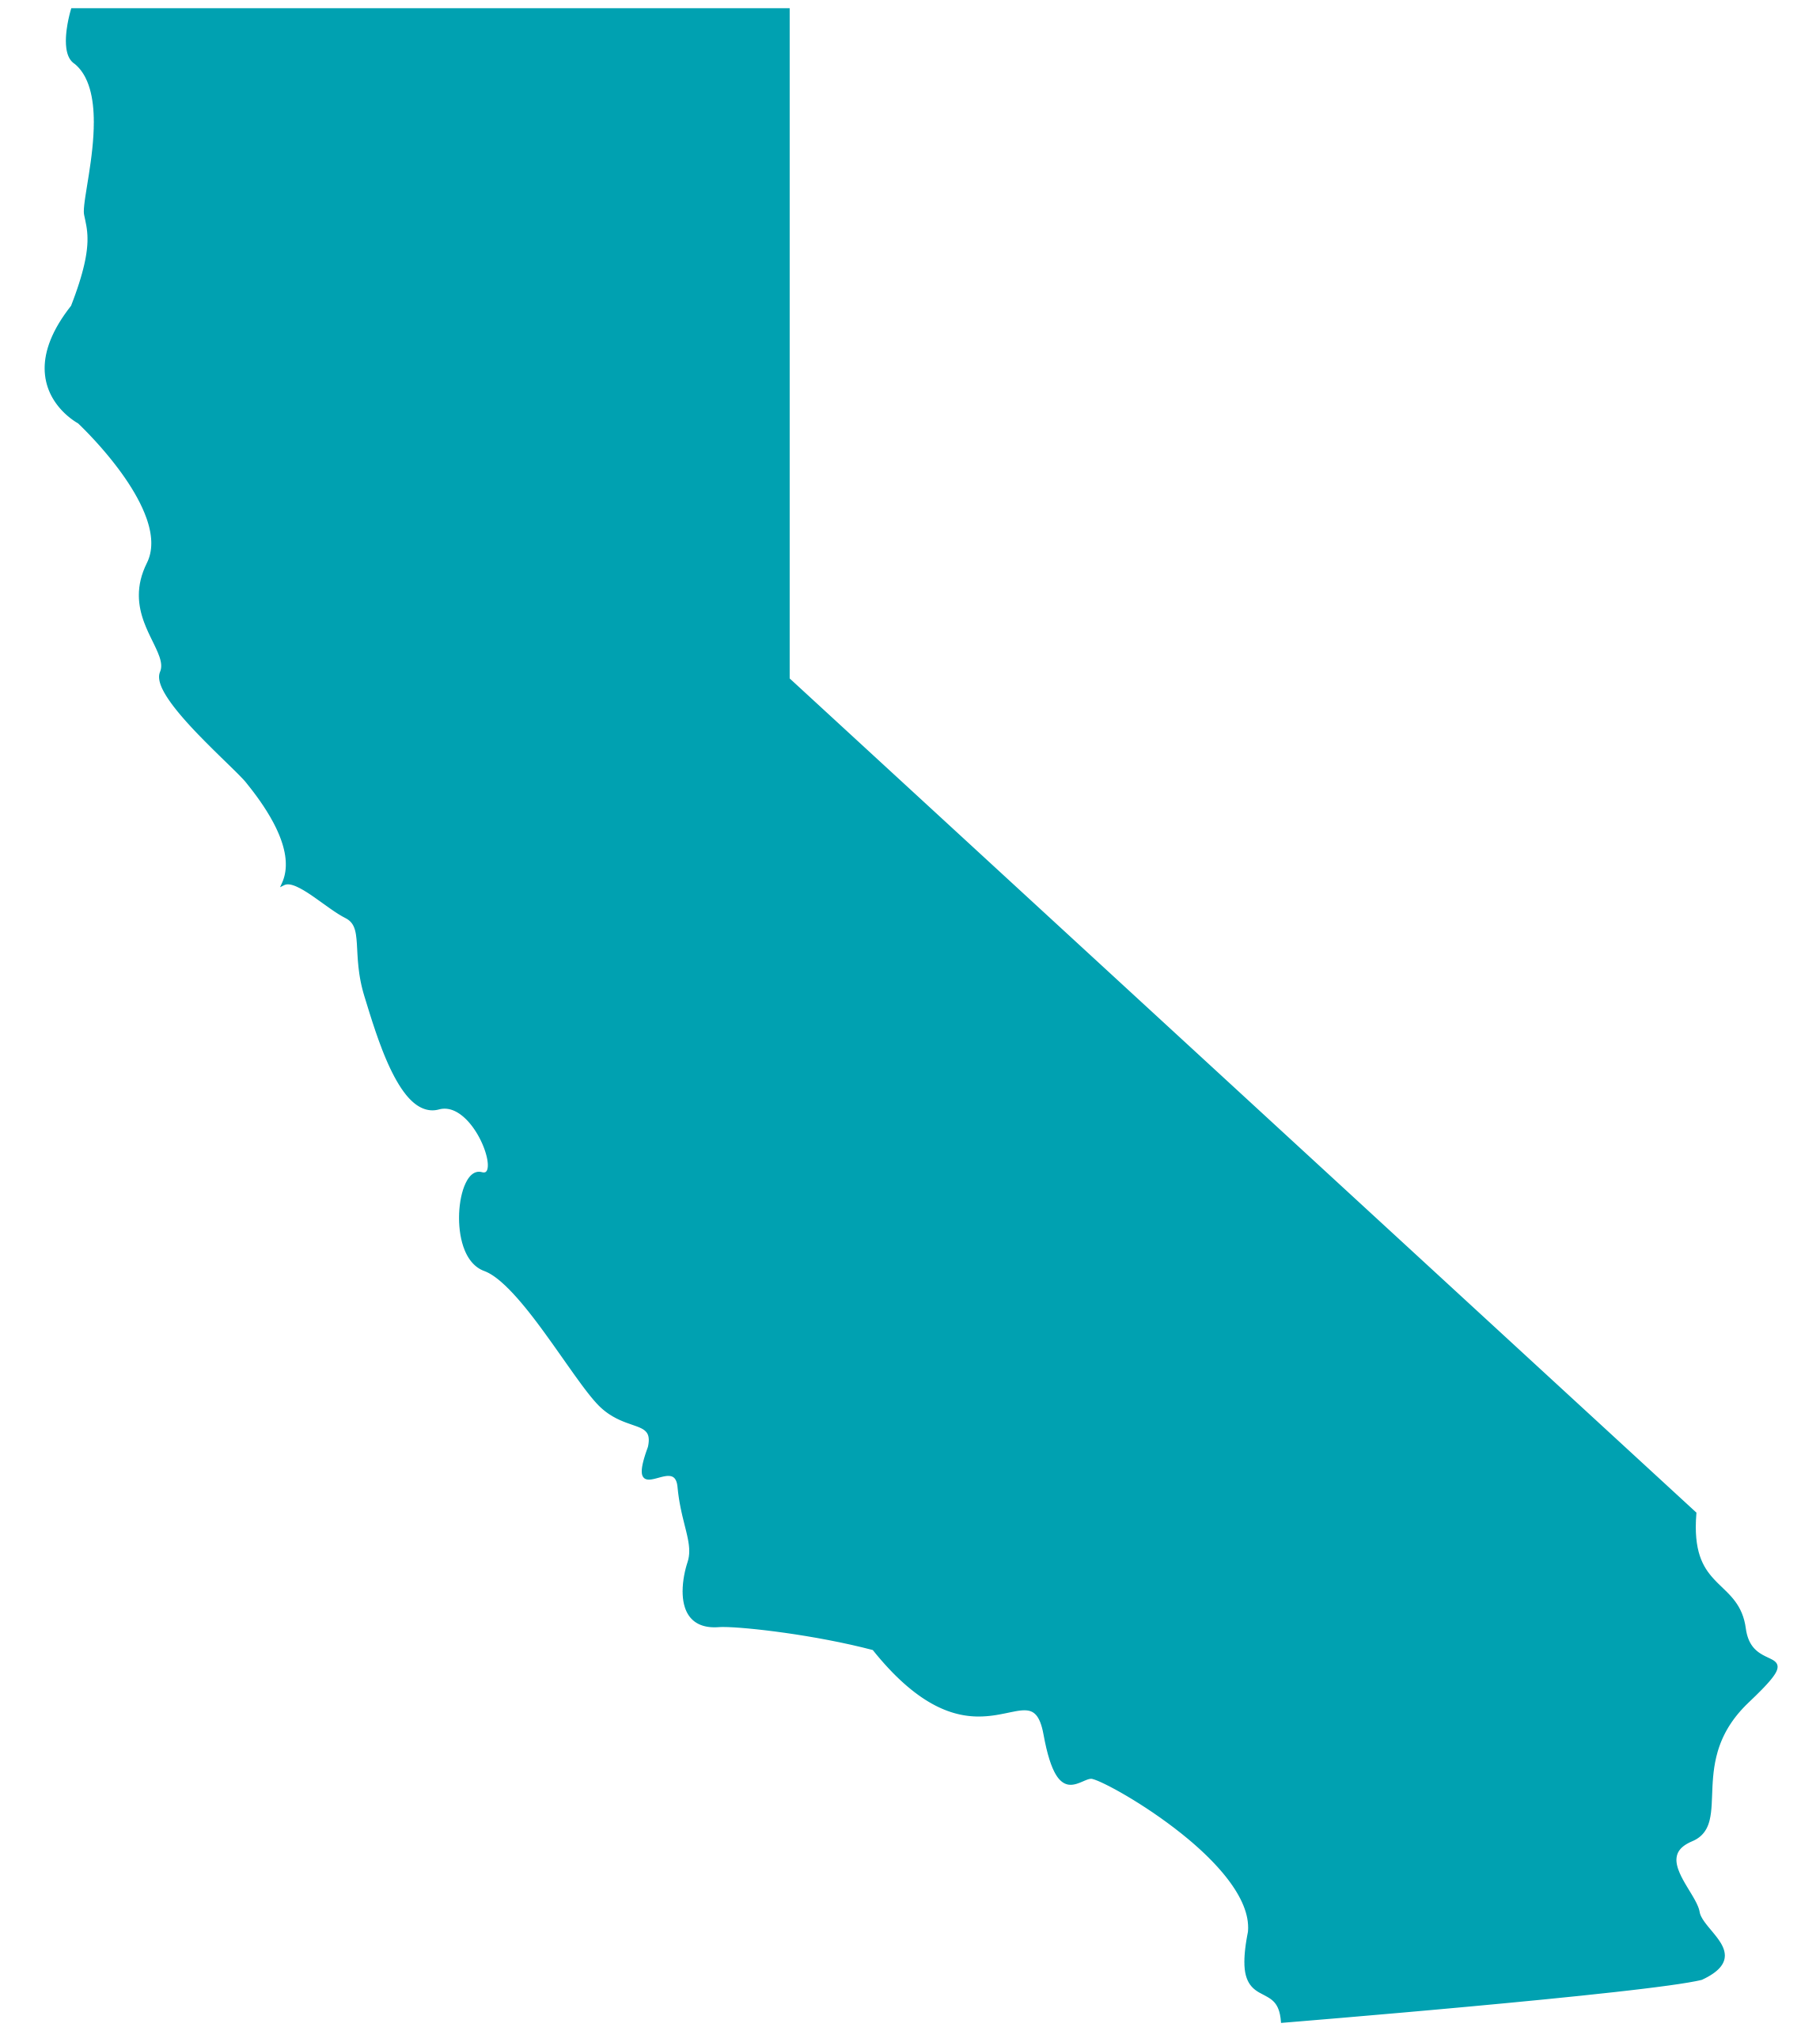 State of california clip art svg free Solid Map Of California Clip Art - ClipArt Best svg free